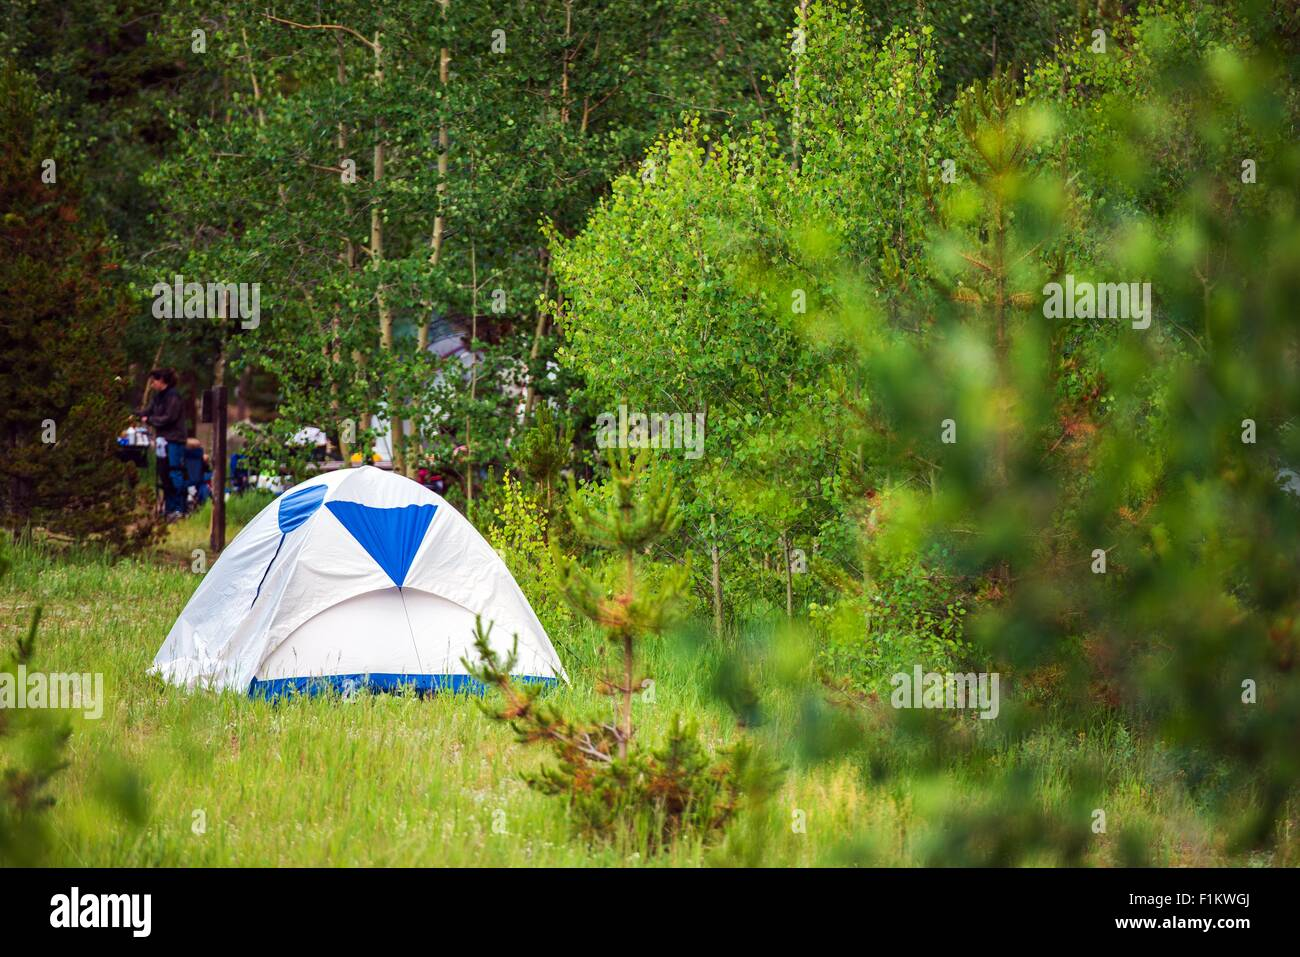 Small Blue Tent Stock Photos & Small Blue Tent Stock Images - Alamy